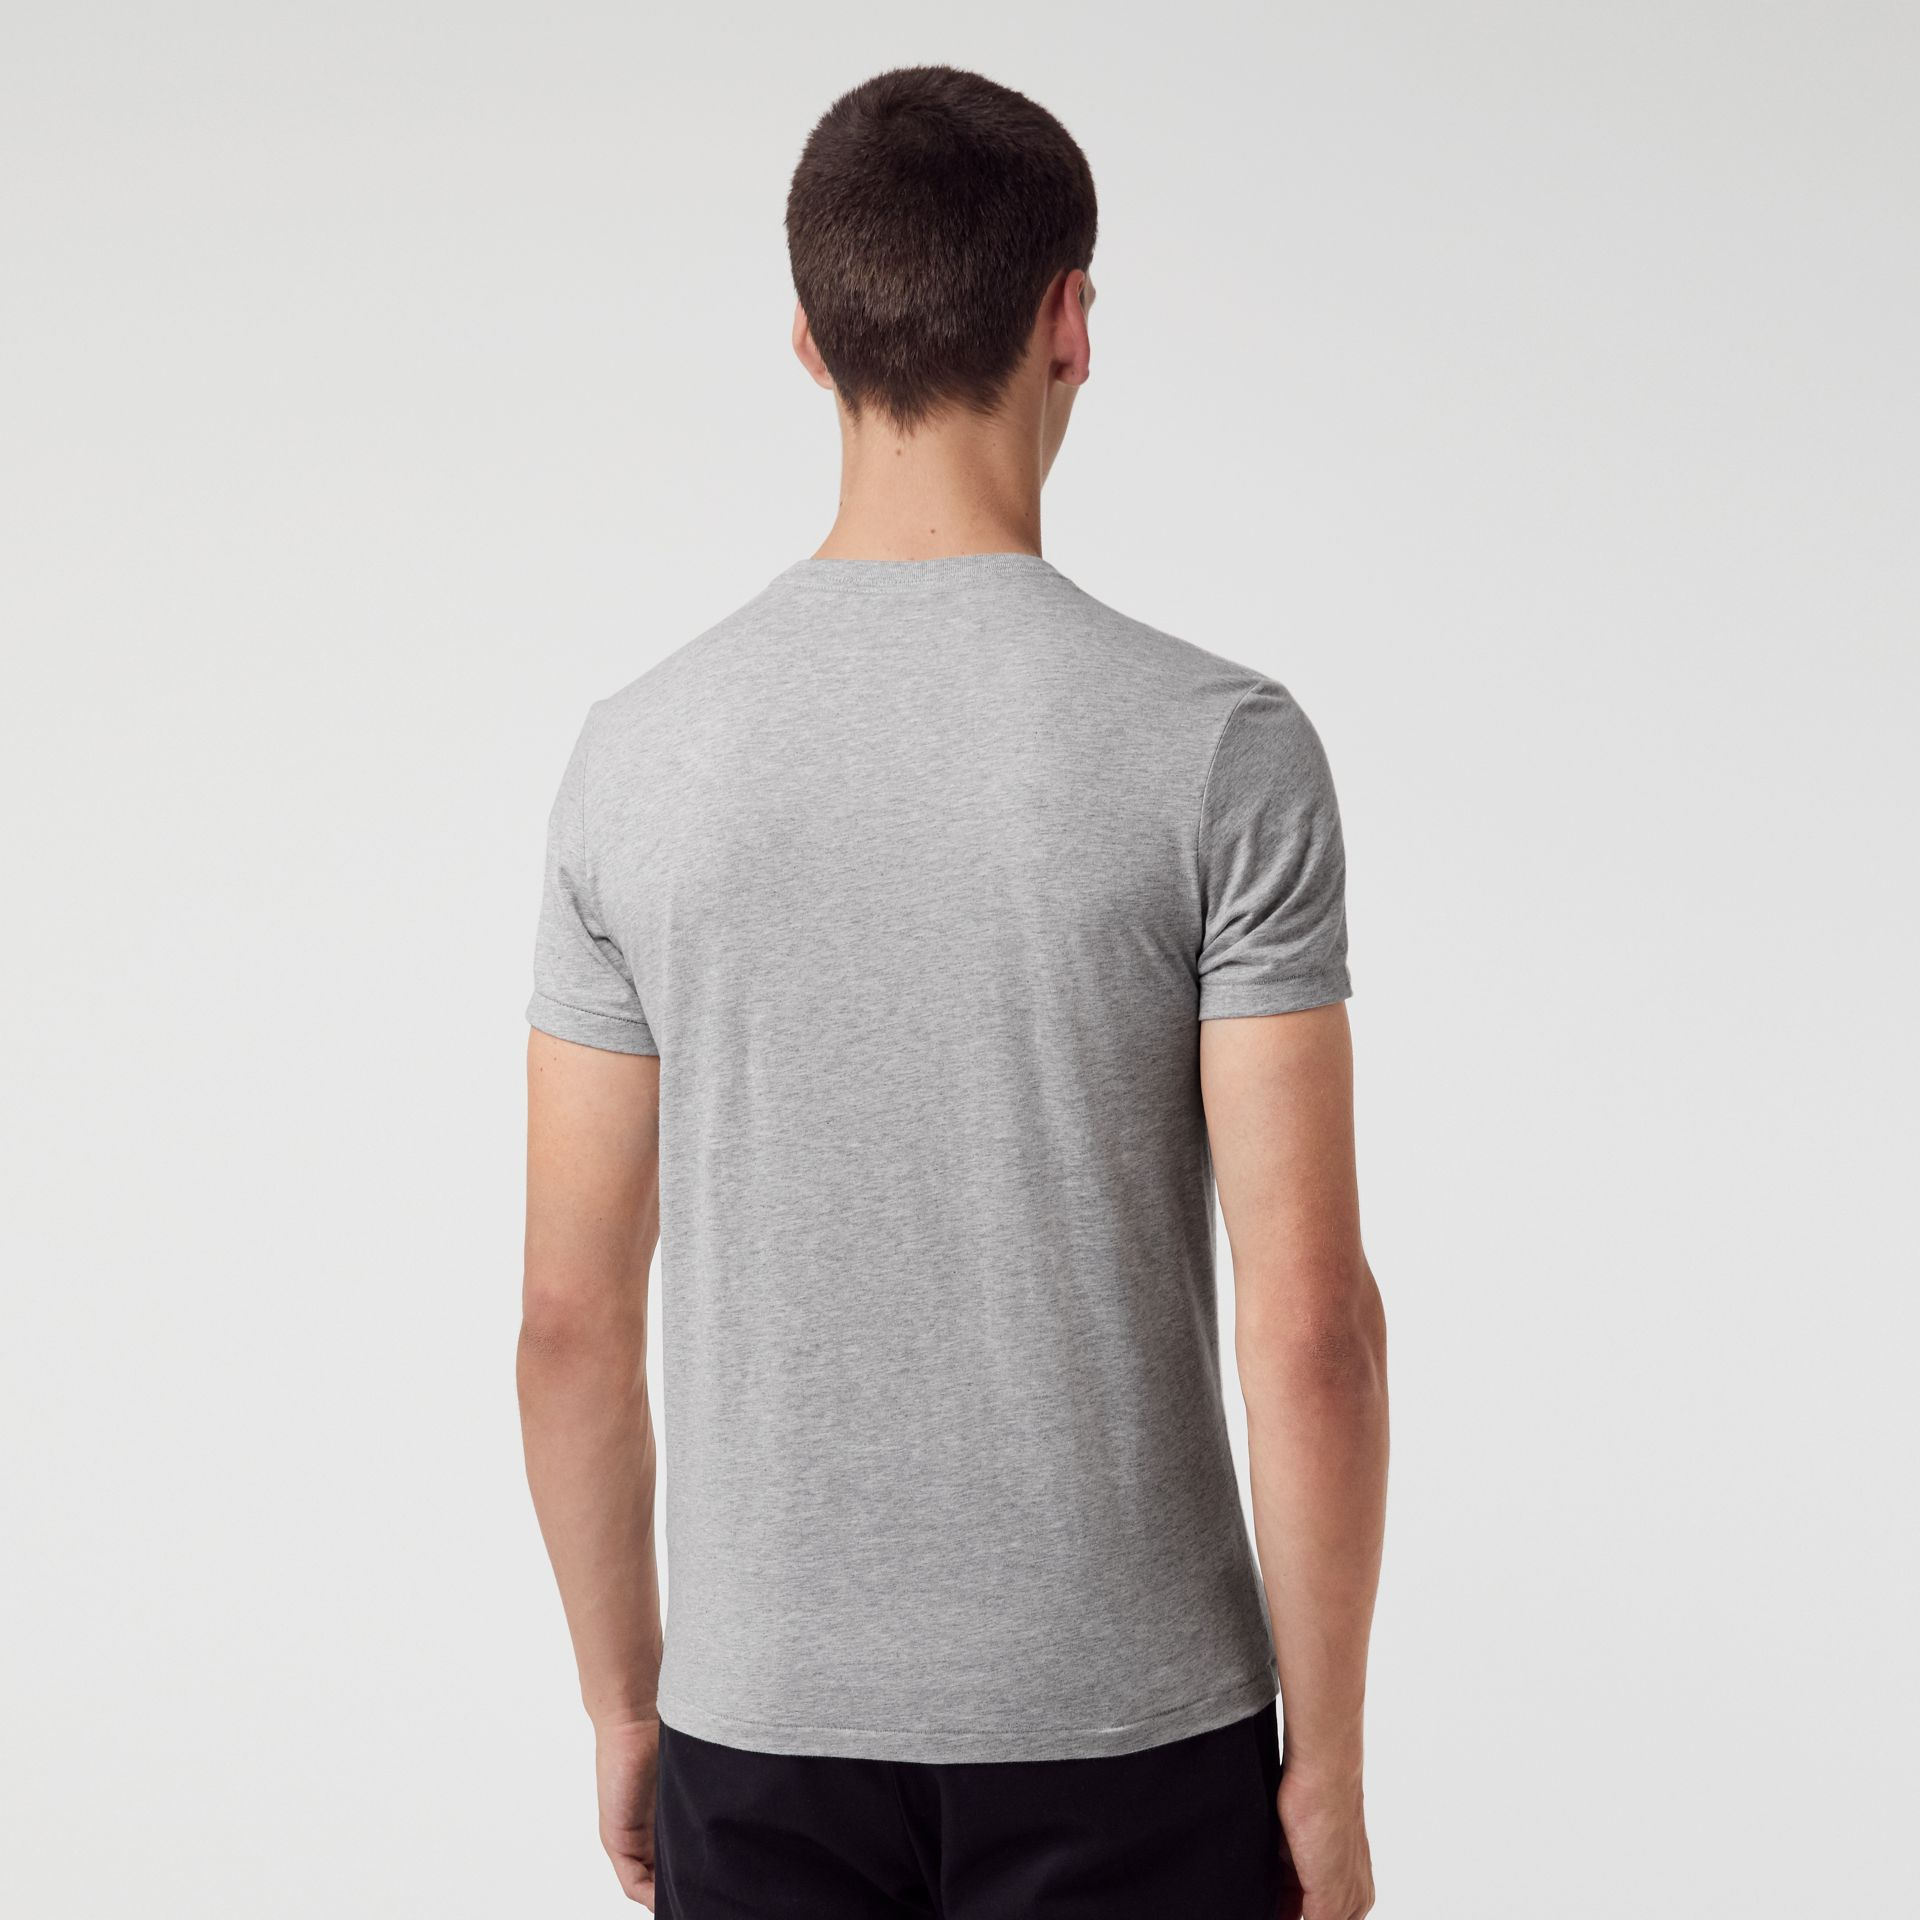 Cotton Jersey V-neck T-shirt in Pale Grey Melange - Men | Burberry Canada - gallery image 2